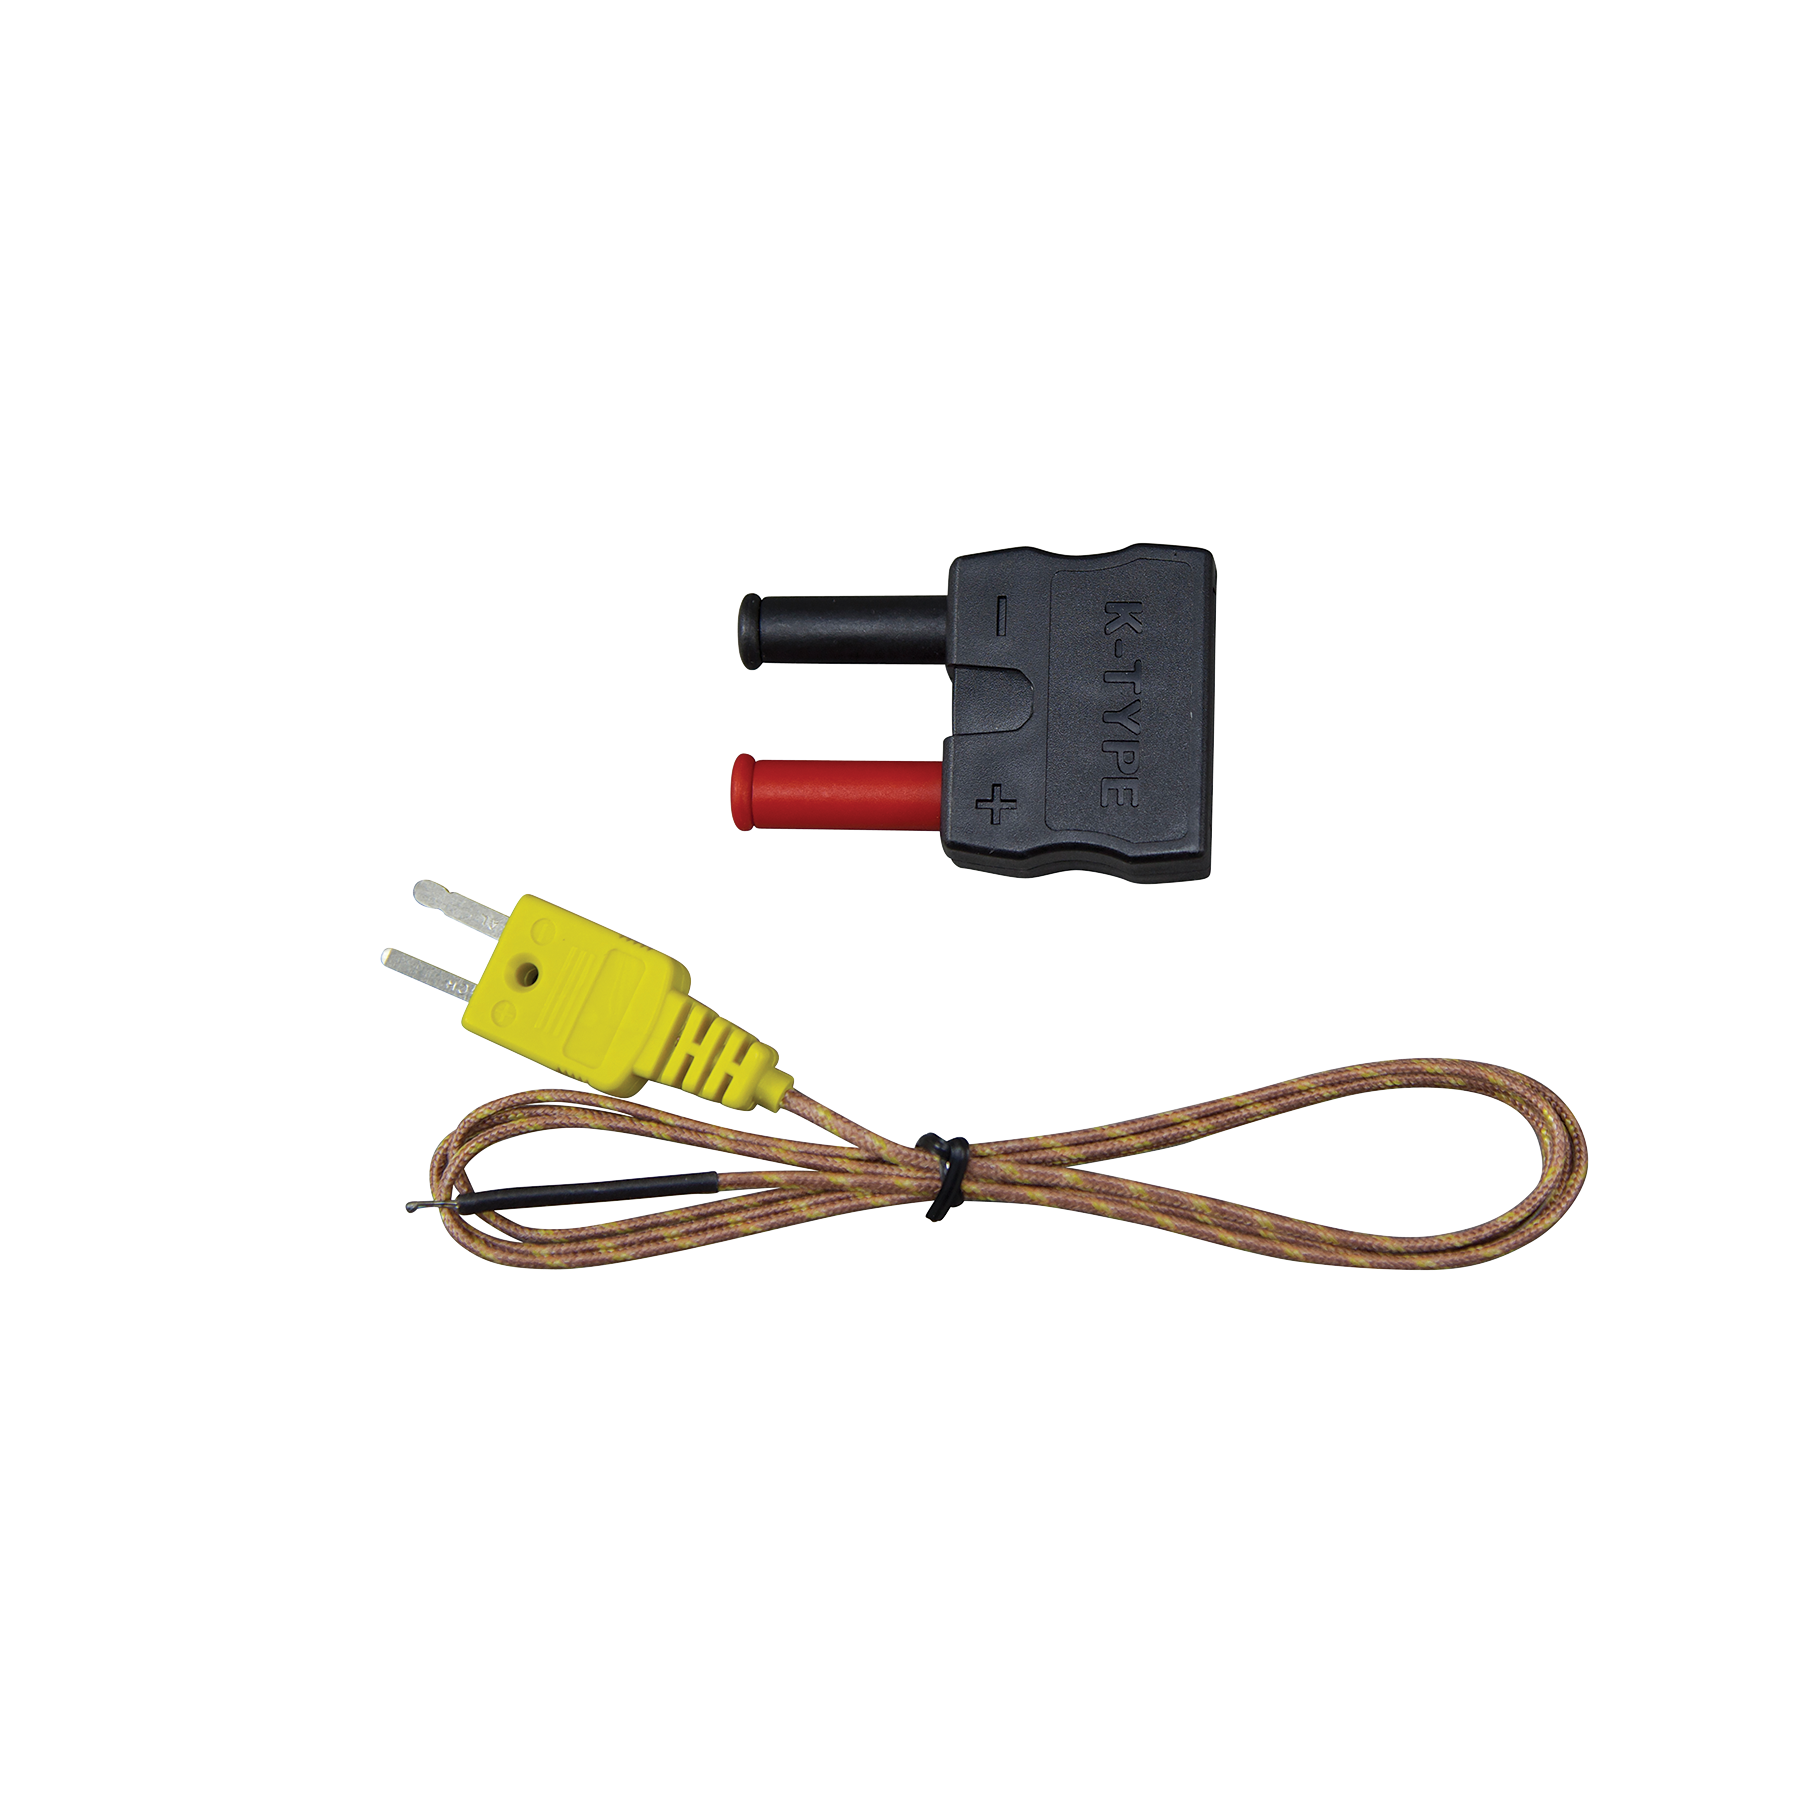 K Type High Temperature Thermocouple 69142 Klein Tools For An Electrical Wire With Pipe And White Background Transparent